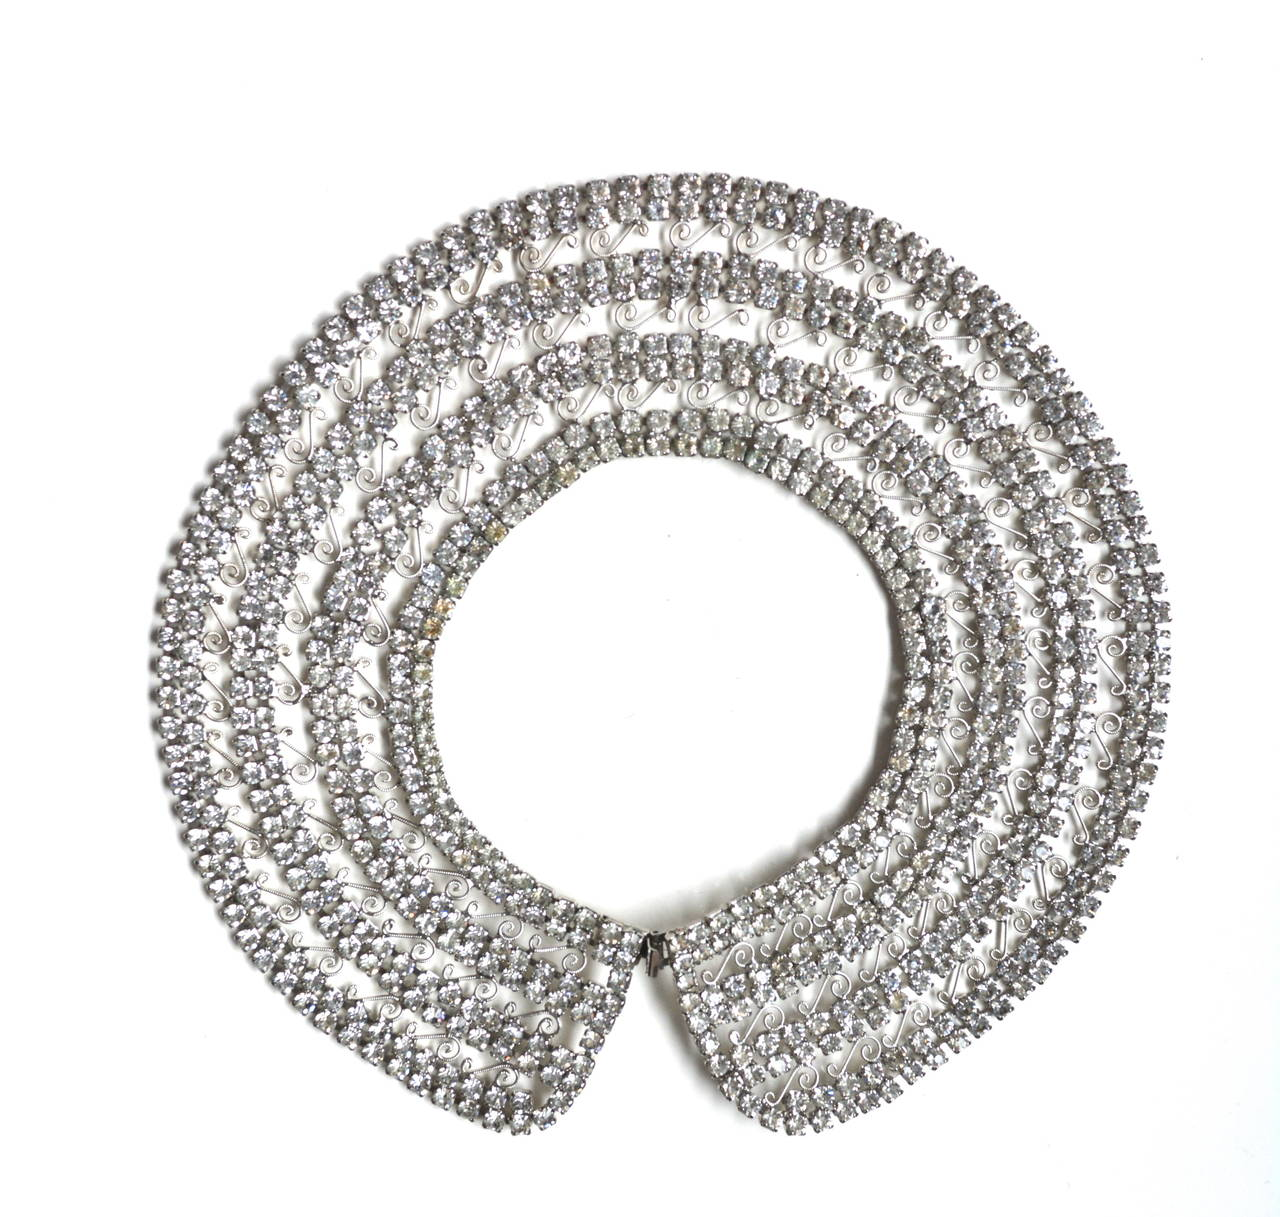 1950s rhinestone collar, unsigned, but has a bit of that Juliana style scroll metal detailing. However, I believe it is unsigned Hattie Carnegie as I have seen a signed similar necklace.  This piece can be worn in the traditional choker style or